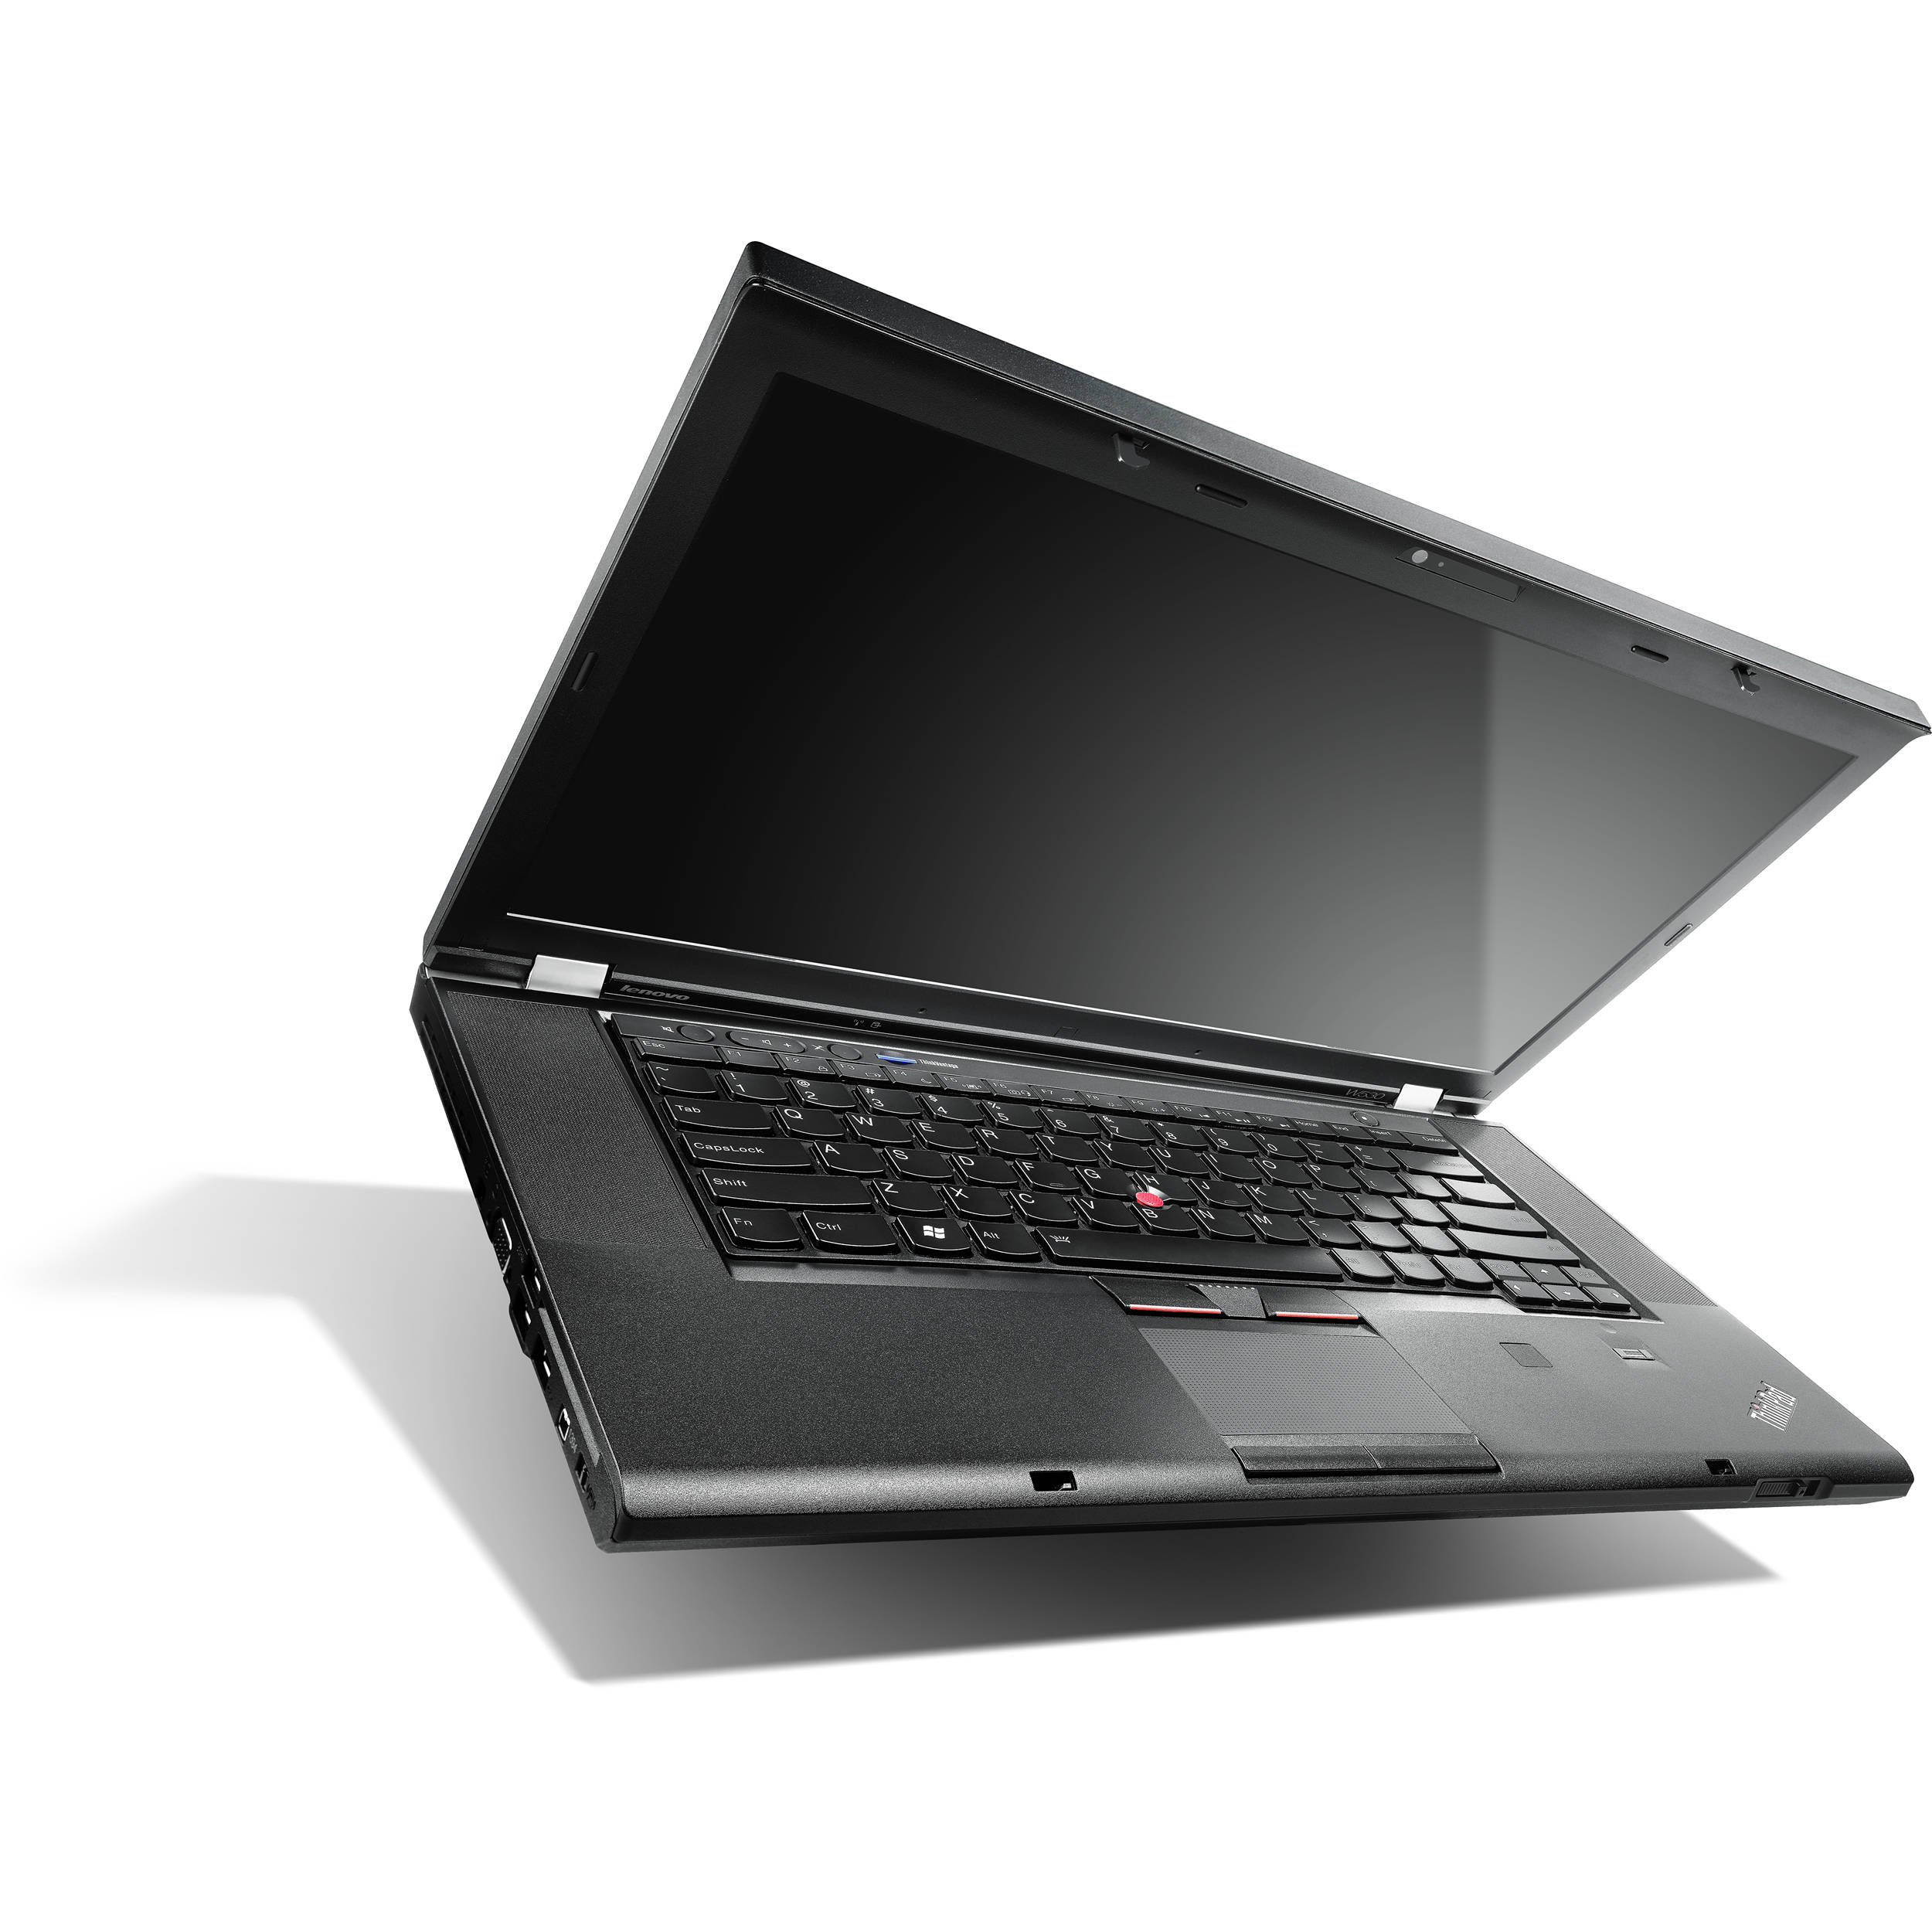 "Lenovo ThinkPad W530 2438-52U 15.6"" Laptop Computer (Black)"